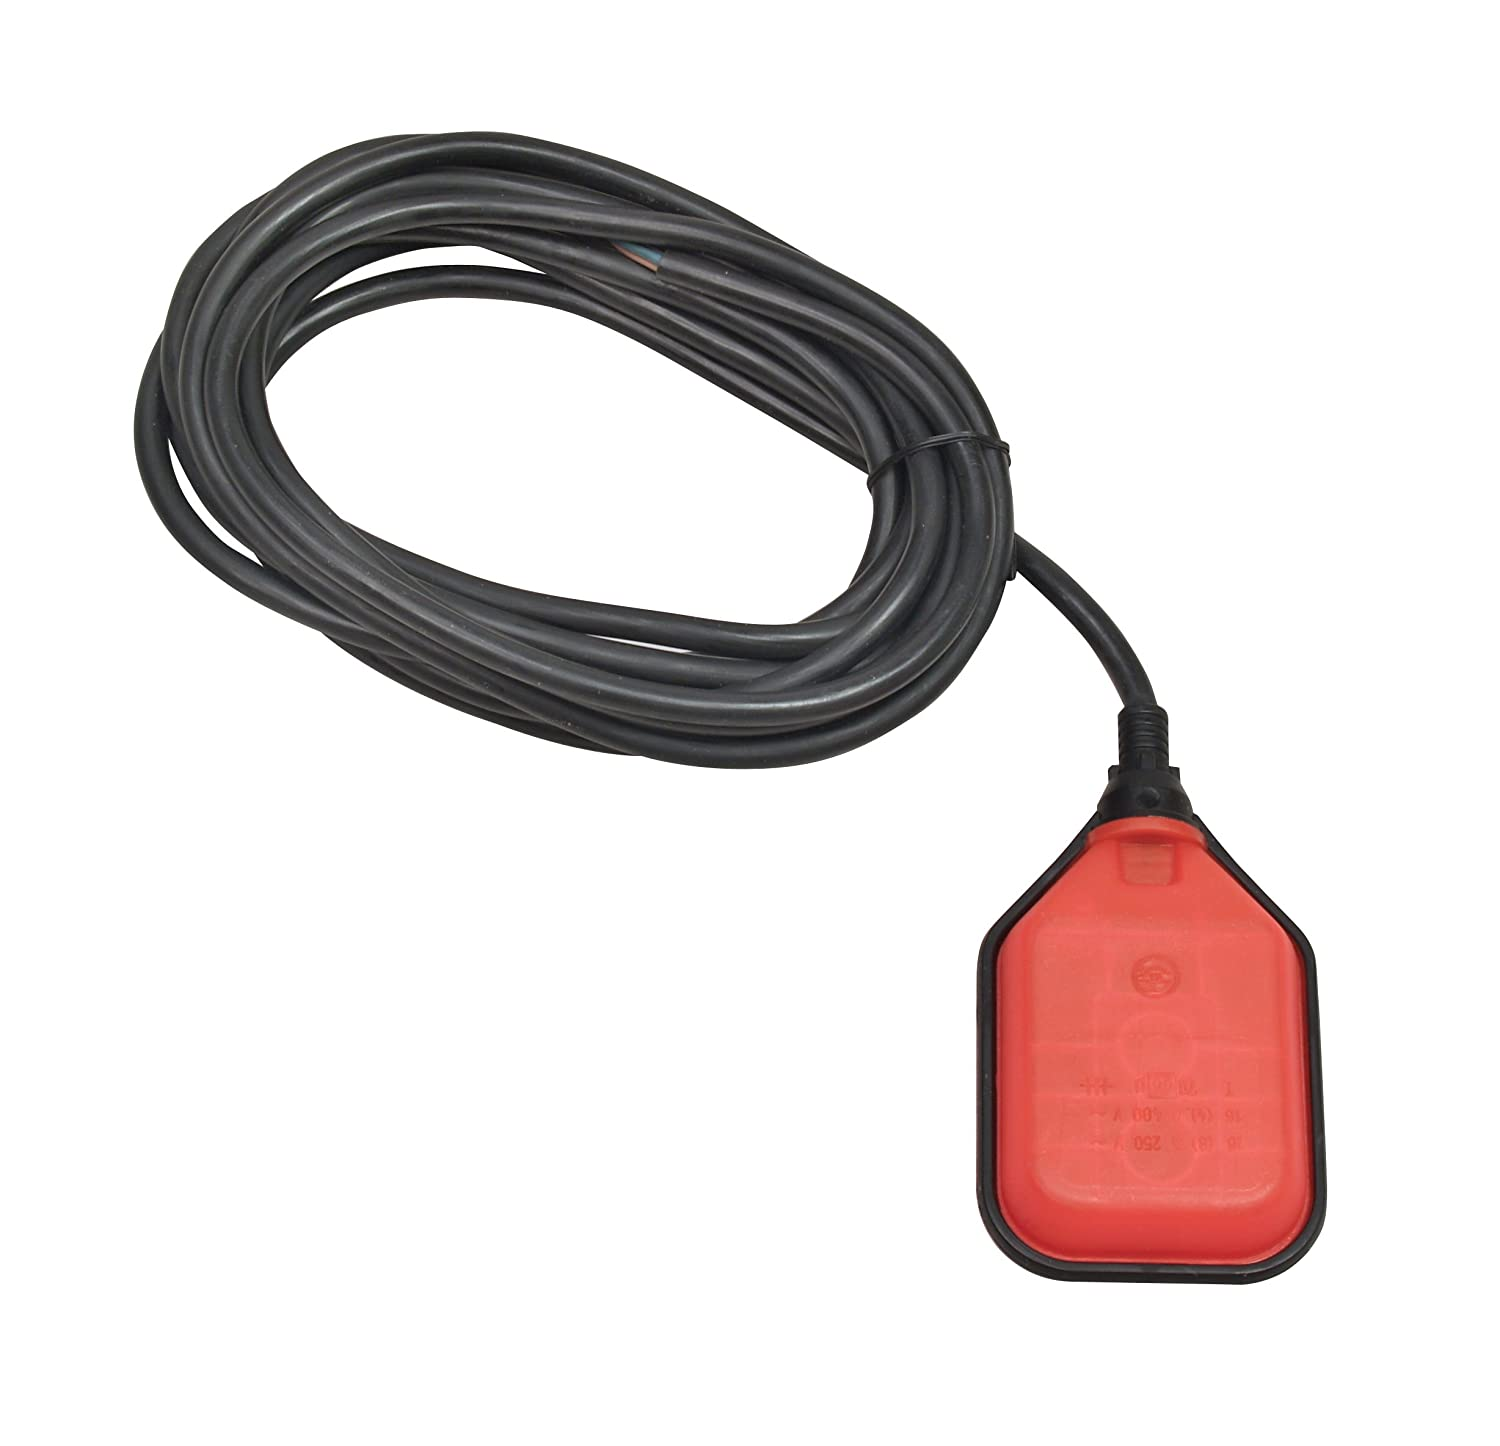 Madison M4189 Epdm Tilt Float Switch 8a Contact Rating 1 Bar Fire Inc Restaurant System Parts Ansulstyle Dpdt Microswitch Pressure 65 Cable Length Electronic Component Liquid Level Sensors